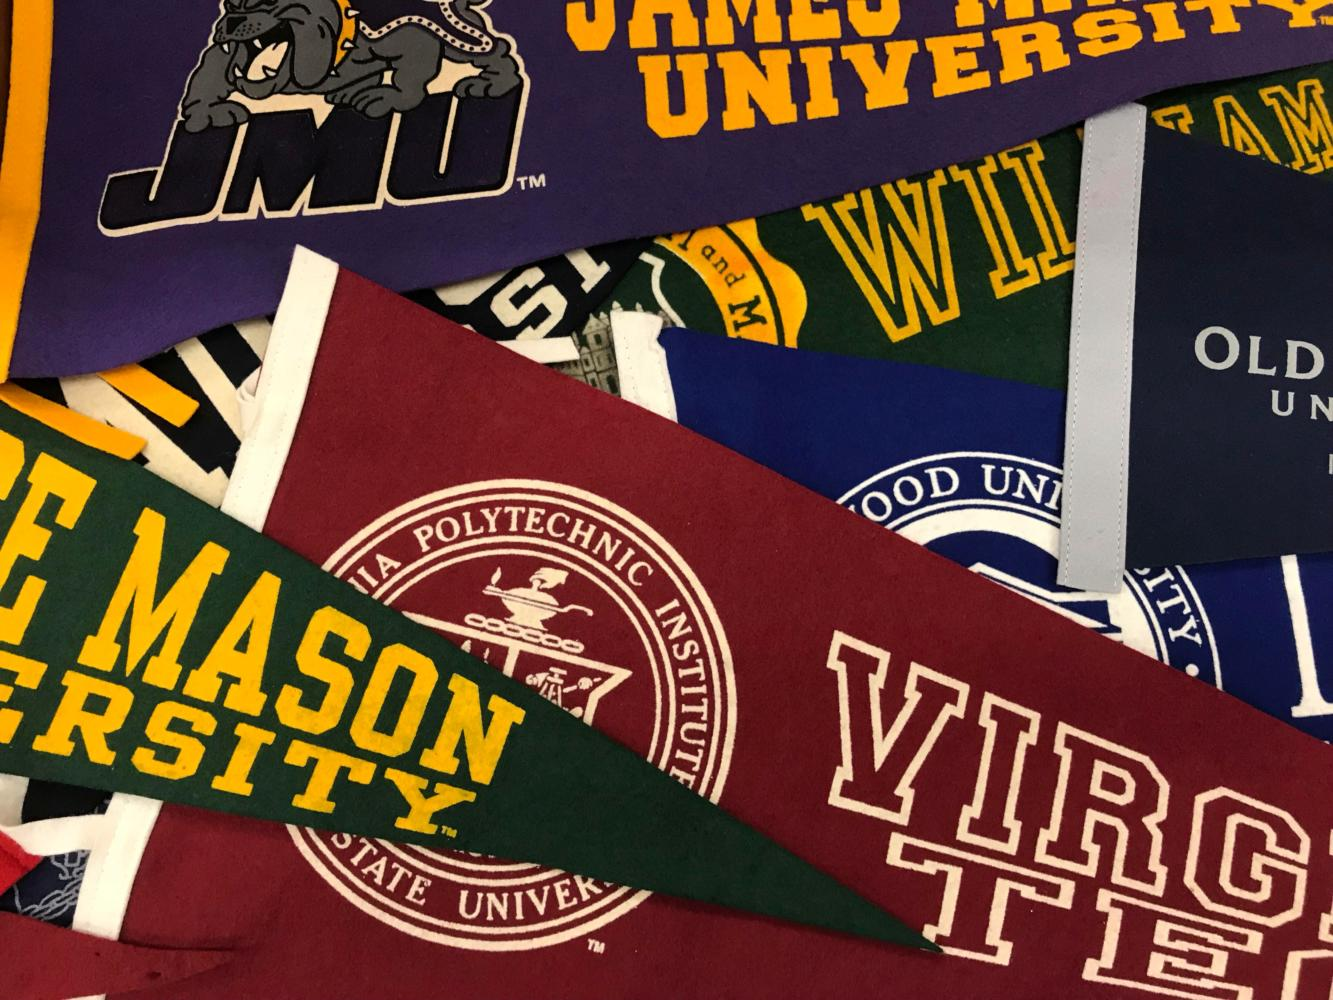 Ms. Martin represents many colleges in her room with colorful banners.